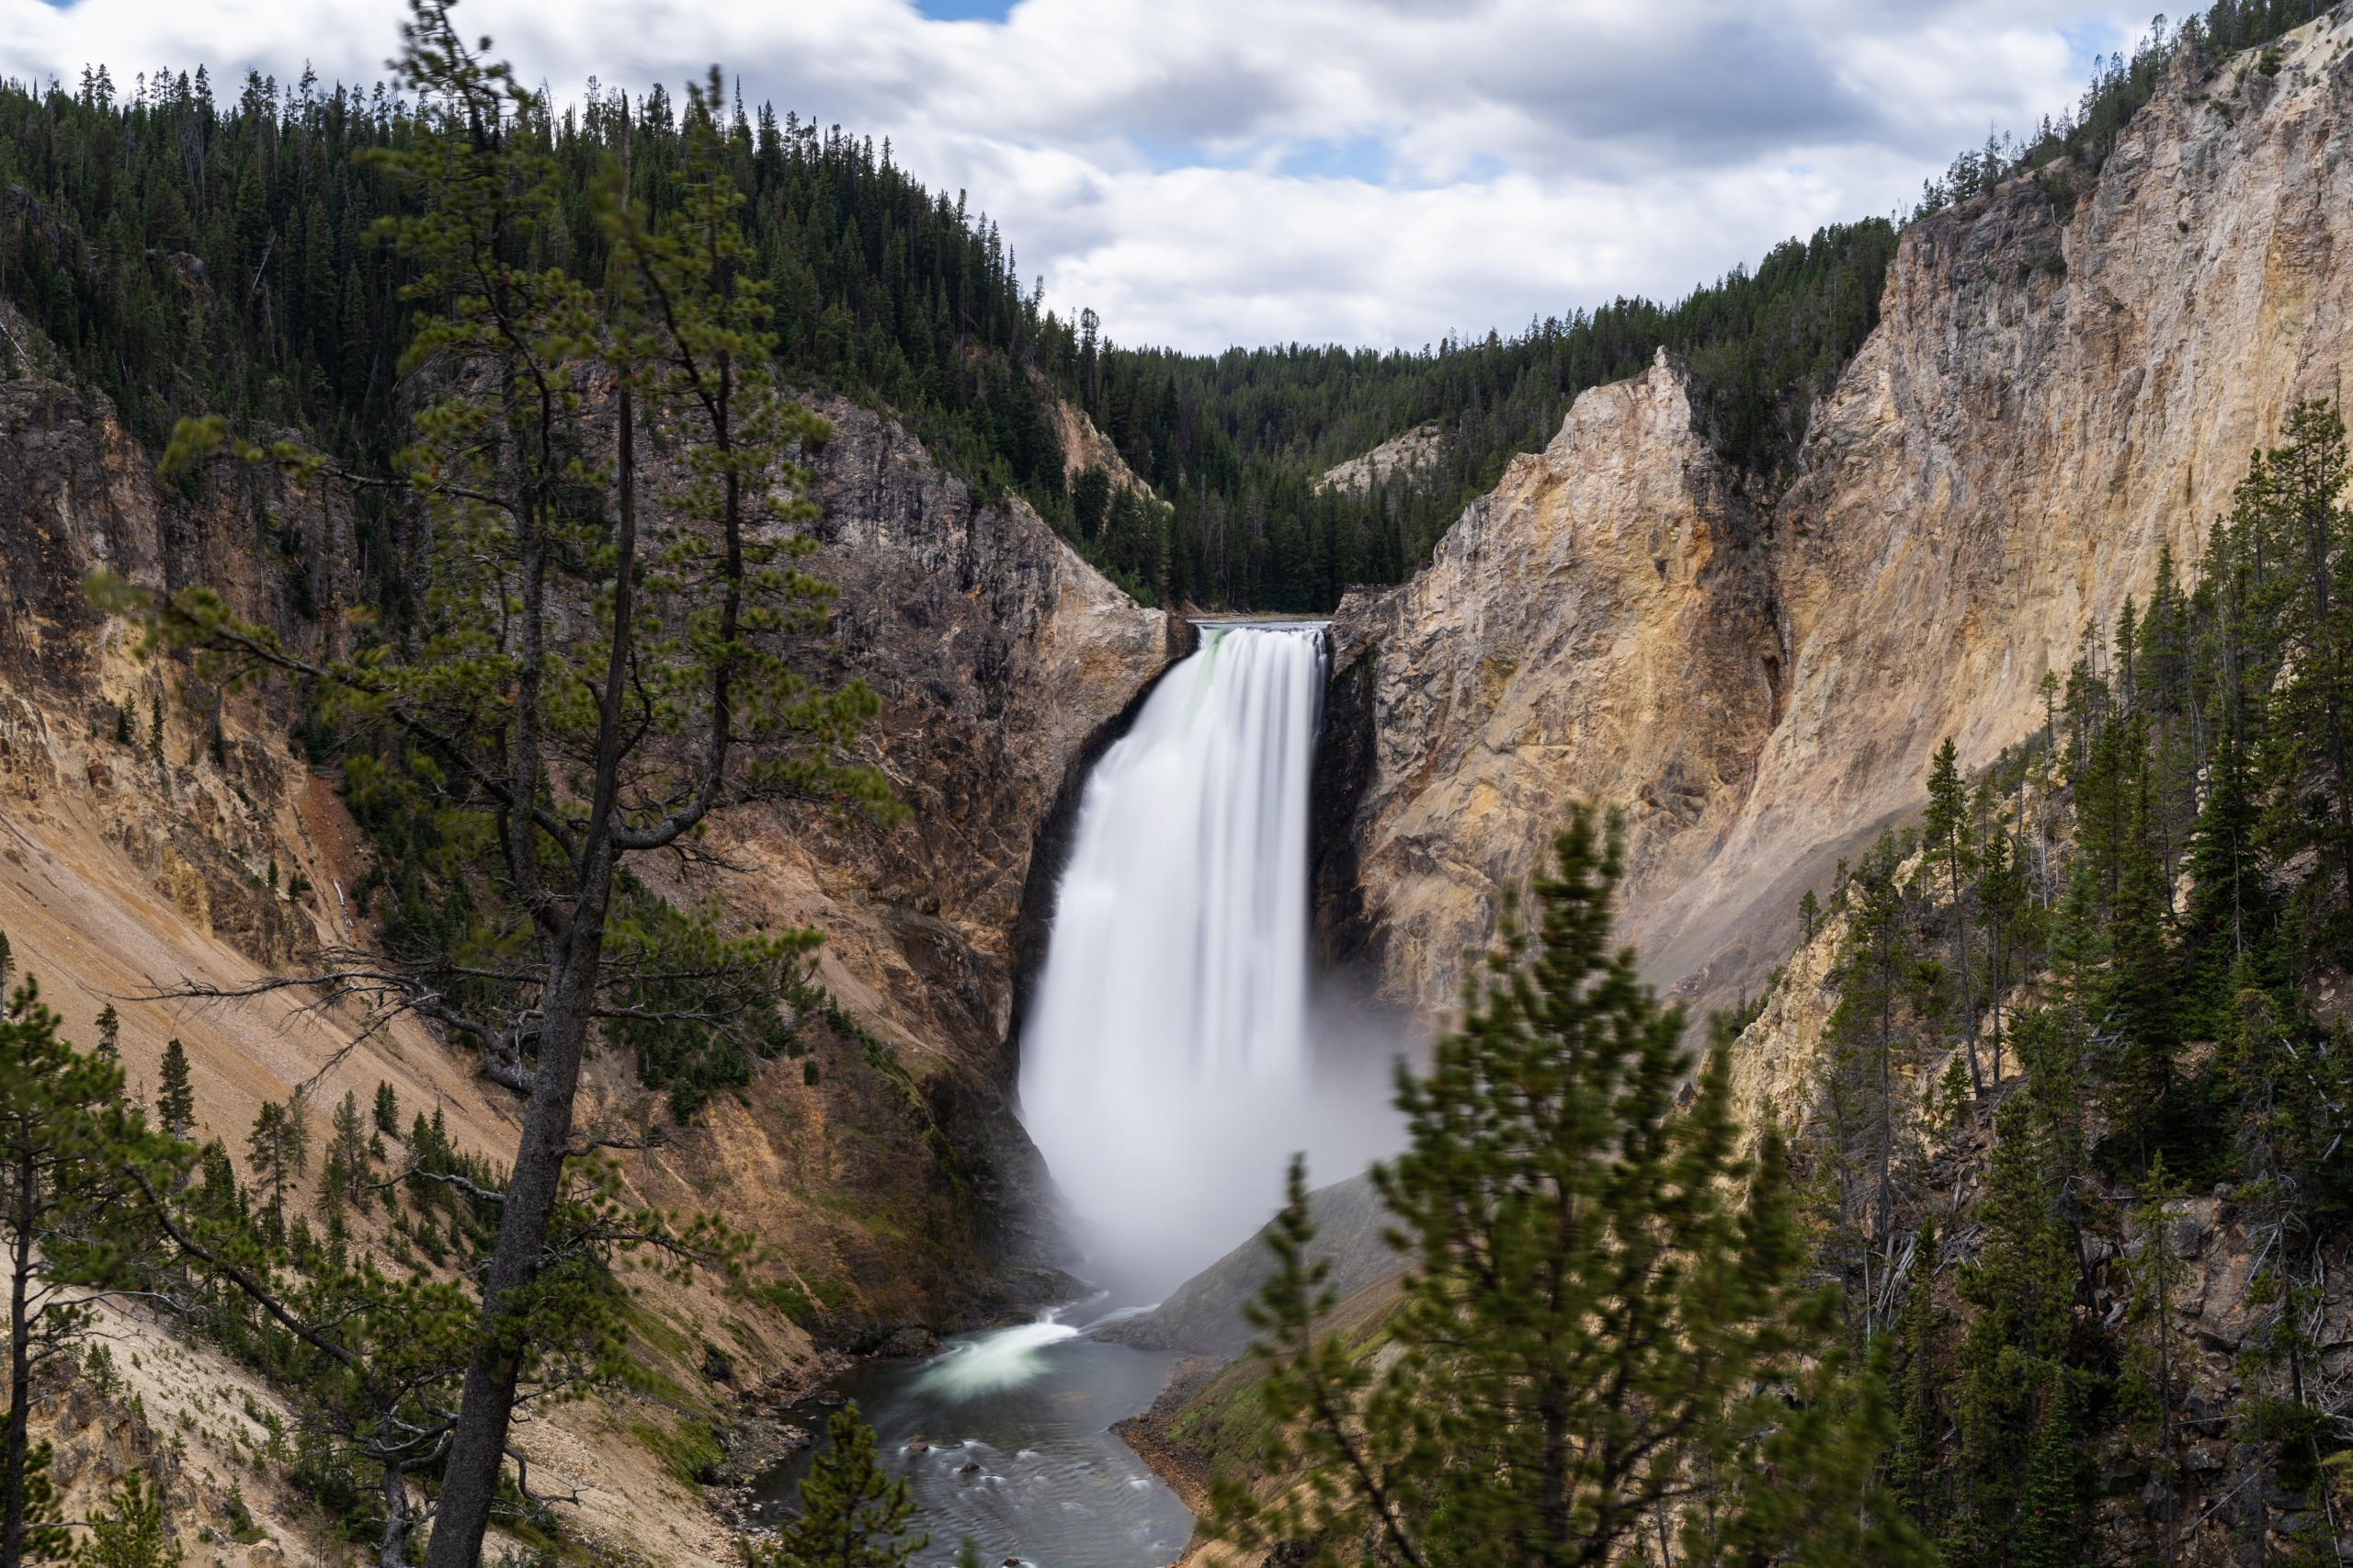 Grand Canyon of the Yellowstone, Wyoming, USA